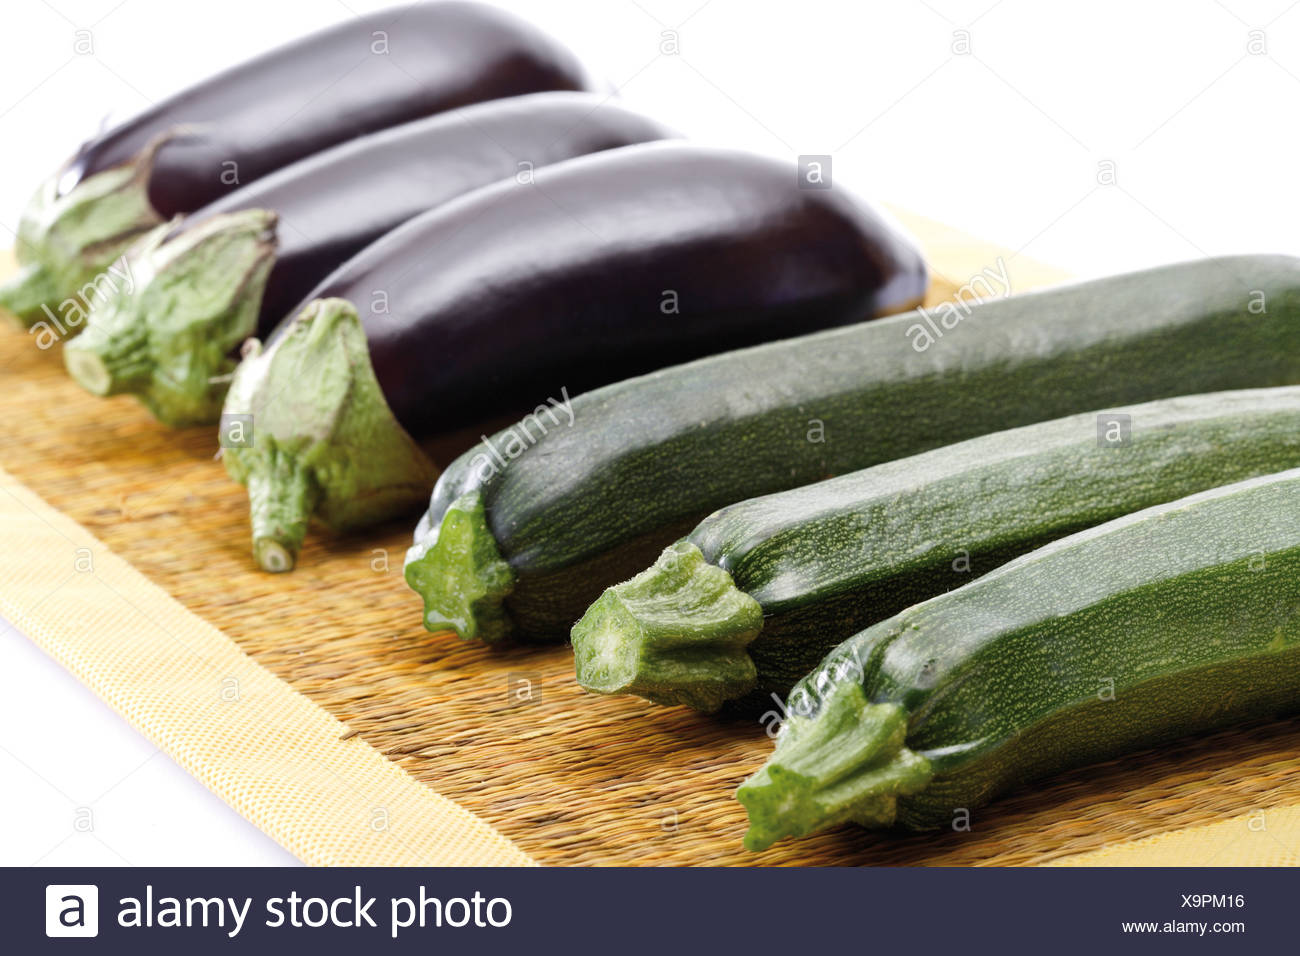 Eggplants and zucchinis Stock Photo